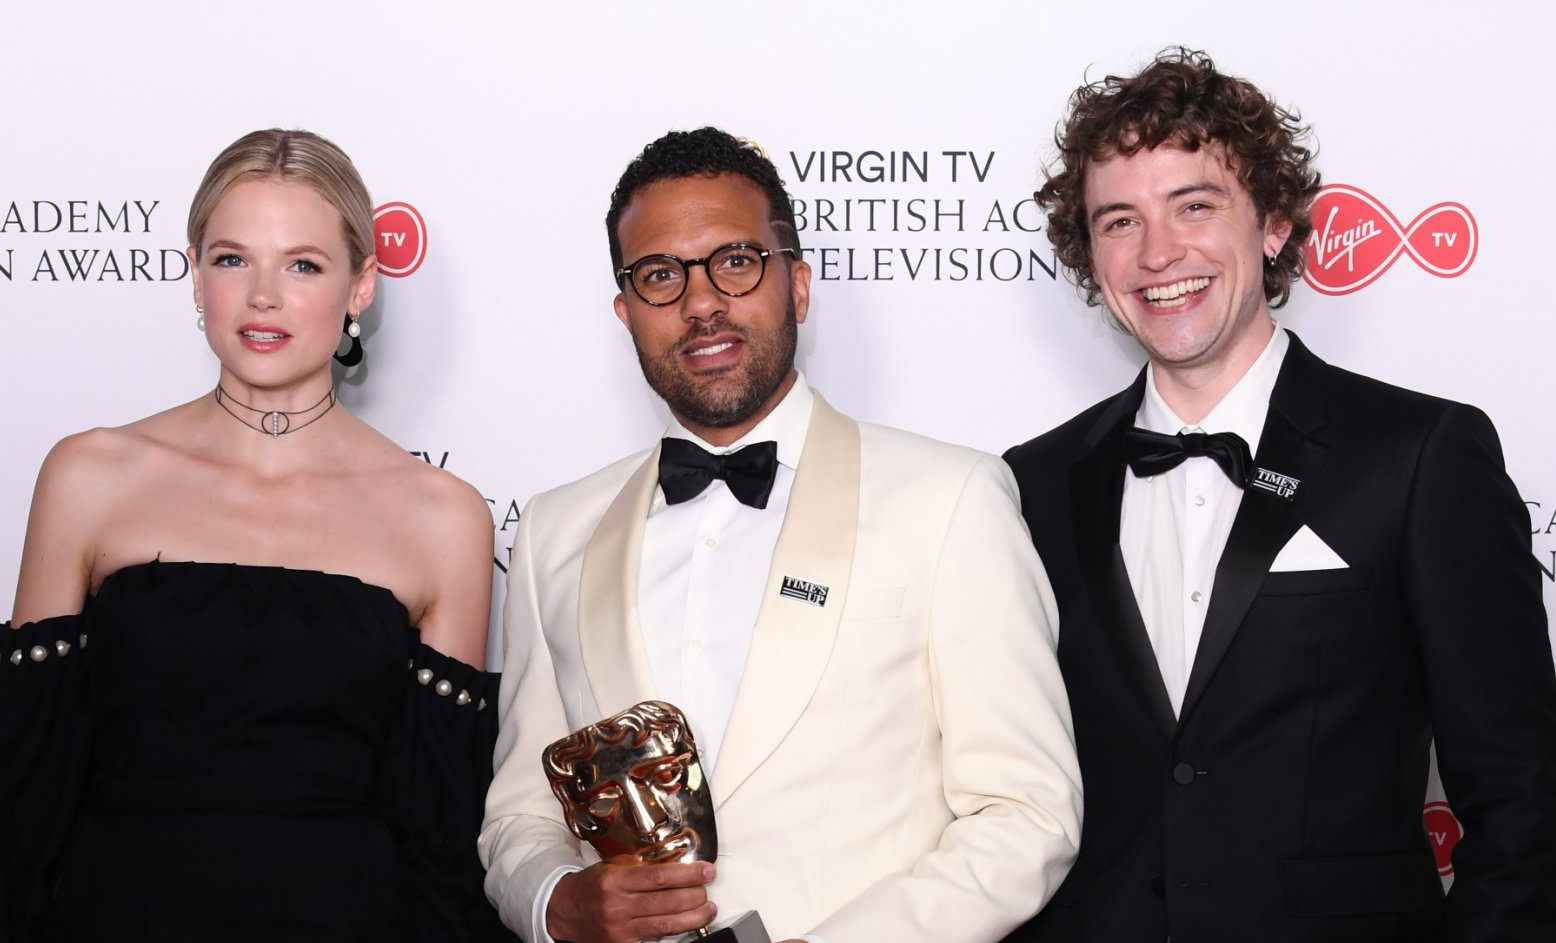 Mandatory Credit: Photo by David Fisher/BAFTA/REX/Shutterstock (9670140v) O-T Fagbenle - International - 'The Handmaid's Tale', presented by Gabriella Wilde and Josh Whitehouse British Academy Television Awards, Press Room, Royal Festival Hall, London, UK - 13 May 2018